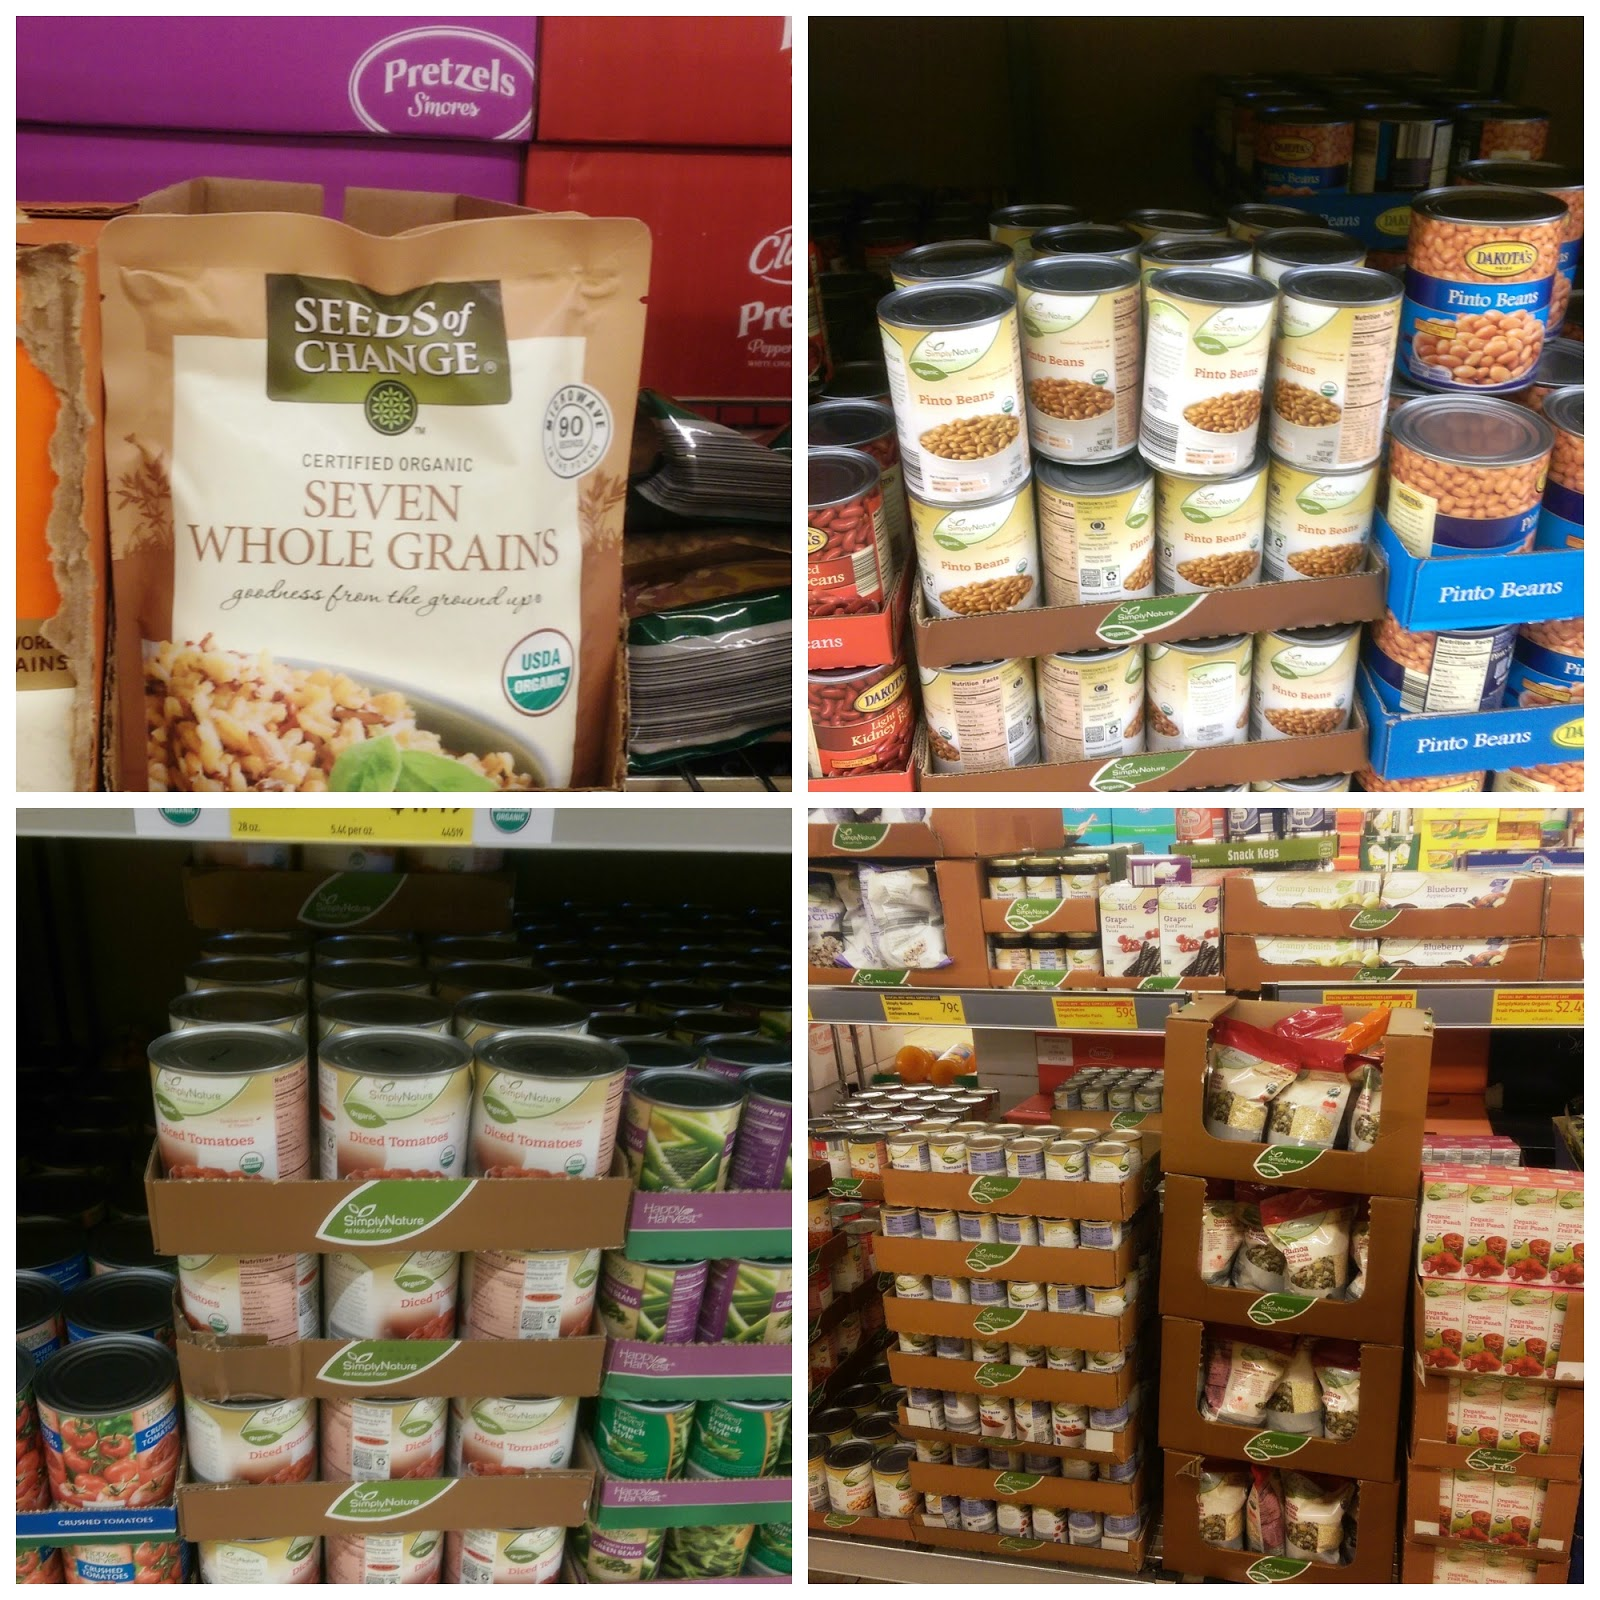 The Best Foods to Buy at Aldi- healthy options chosen by a registered dietitian